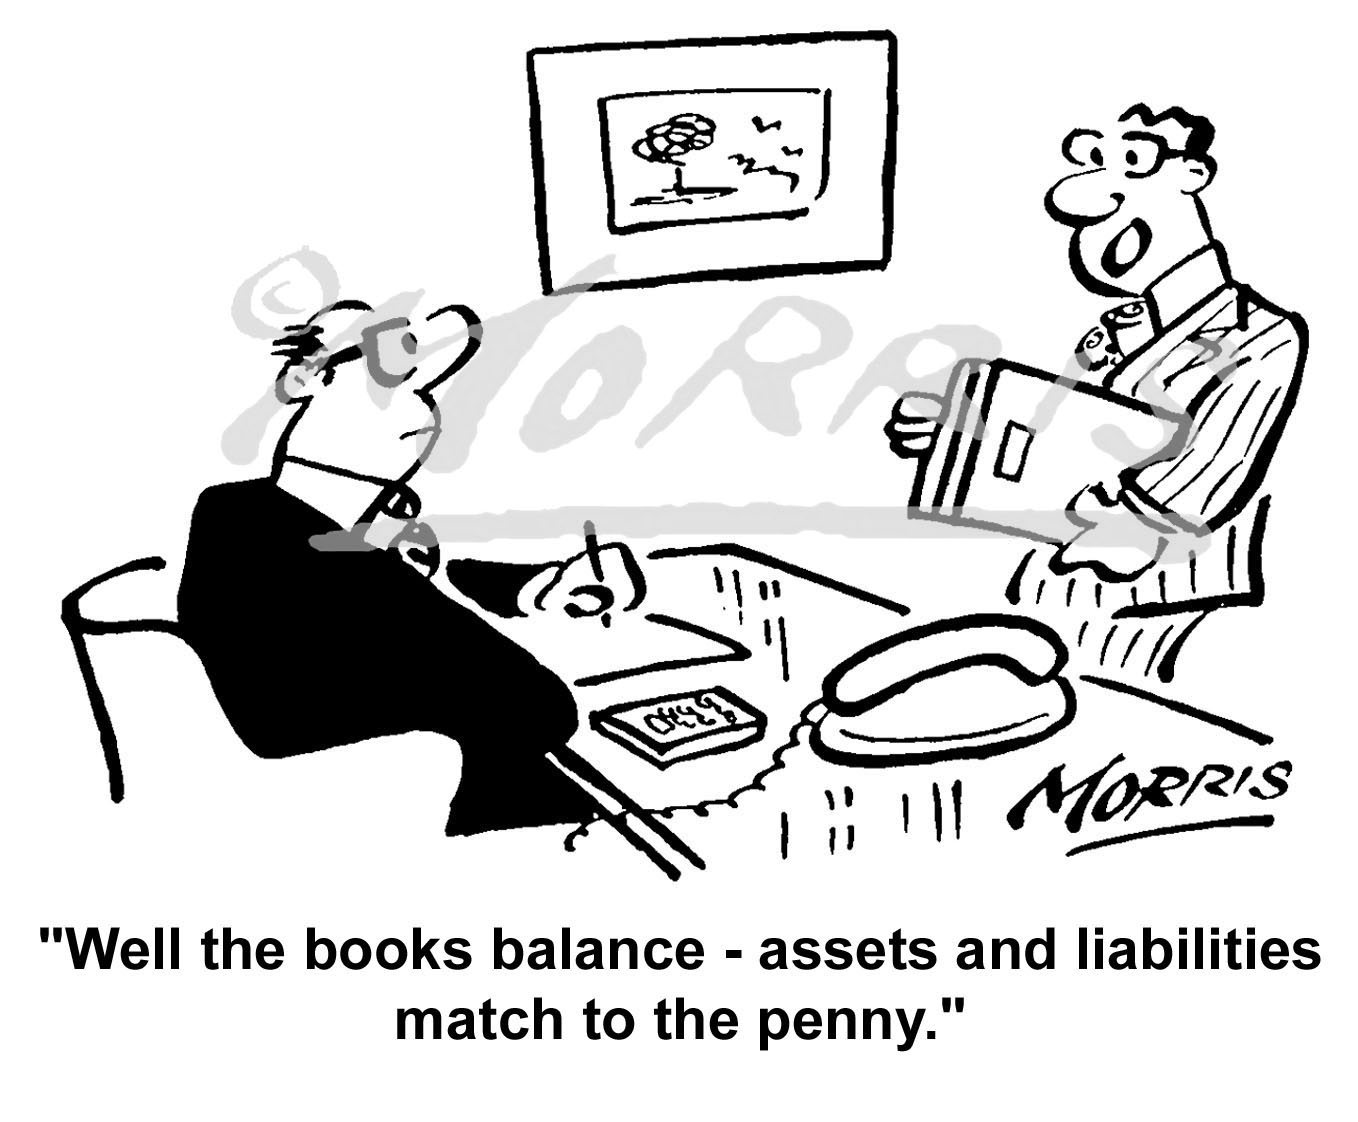 Accountant cartoon, Accountancy cartoon, Auditor cartoon – Ref: 2807bw